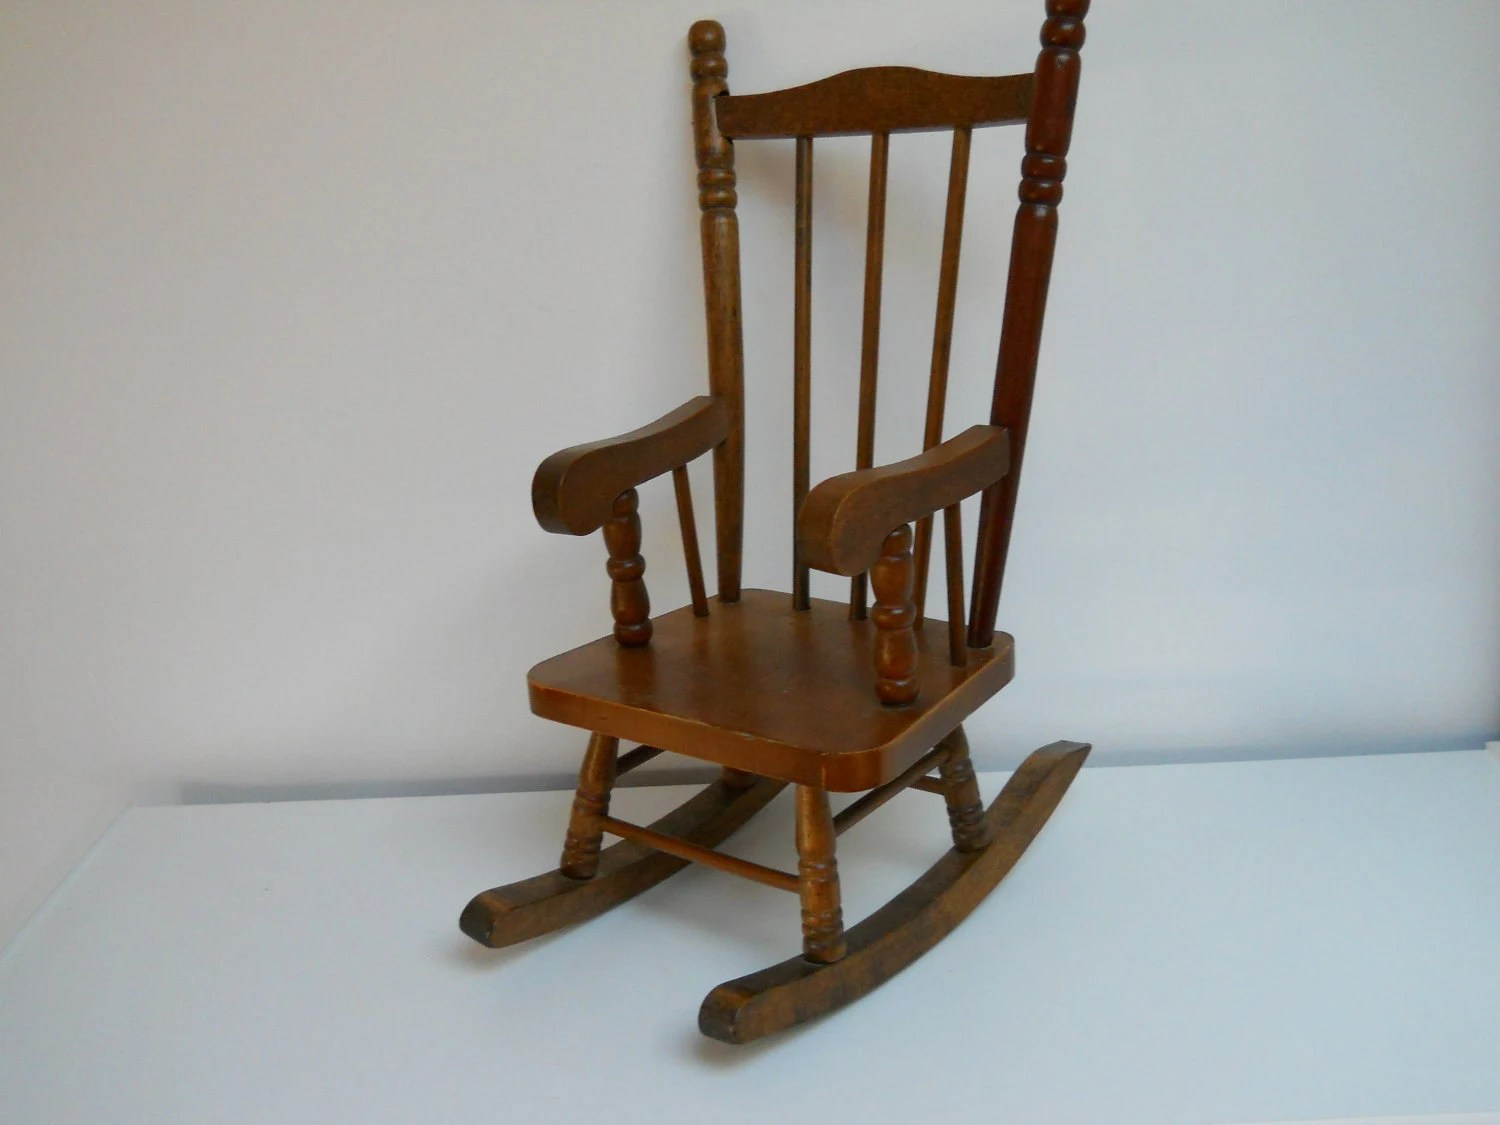 antique wooden rocking chairs large chair cushions vintage dolls wood